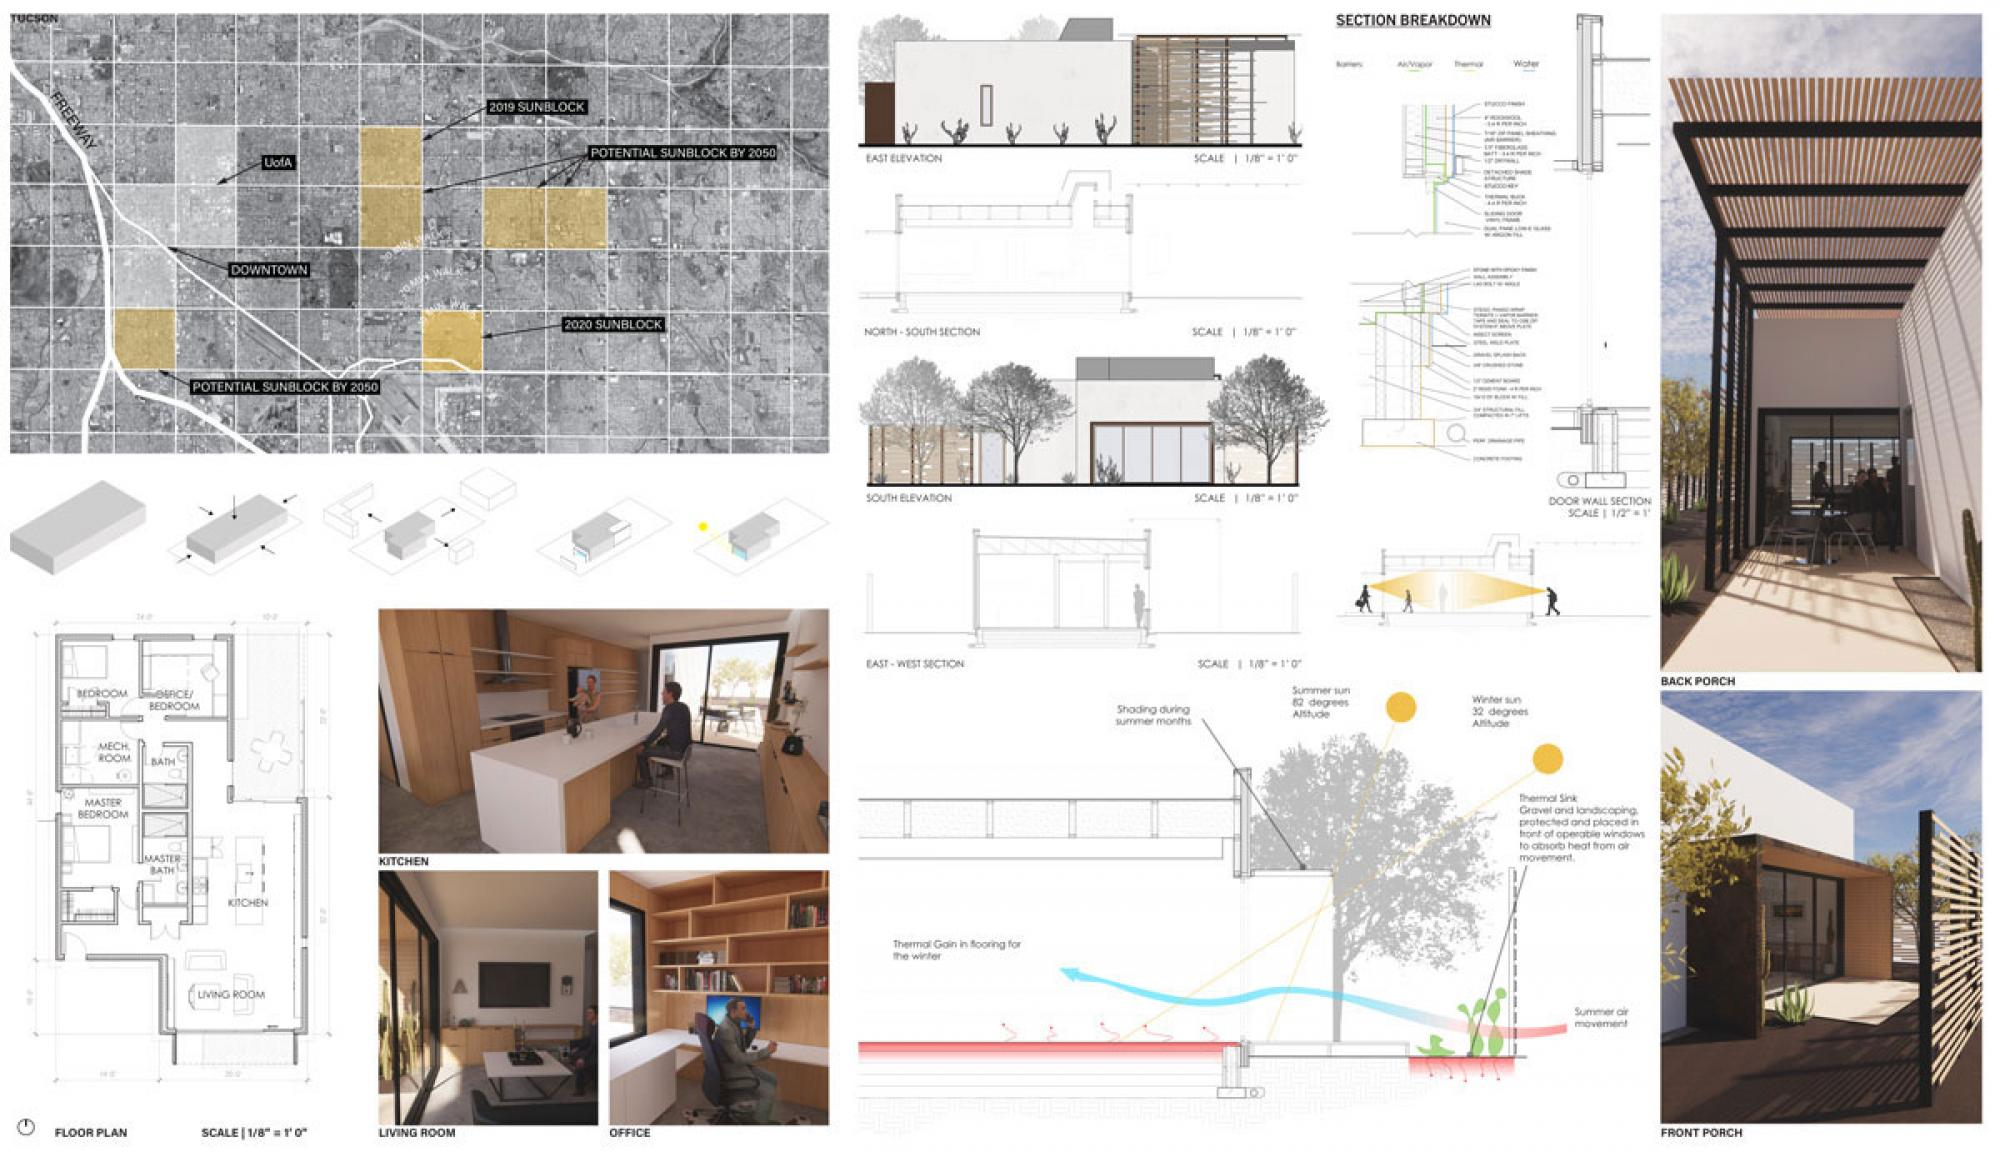 Course: Solar Decathlon Design Challenge | Instructor: Jonathan Bean | Students: Josh Muckenthaler, Sierra Yang, Nik Altamura and Chumei Ru